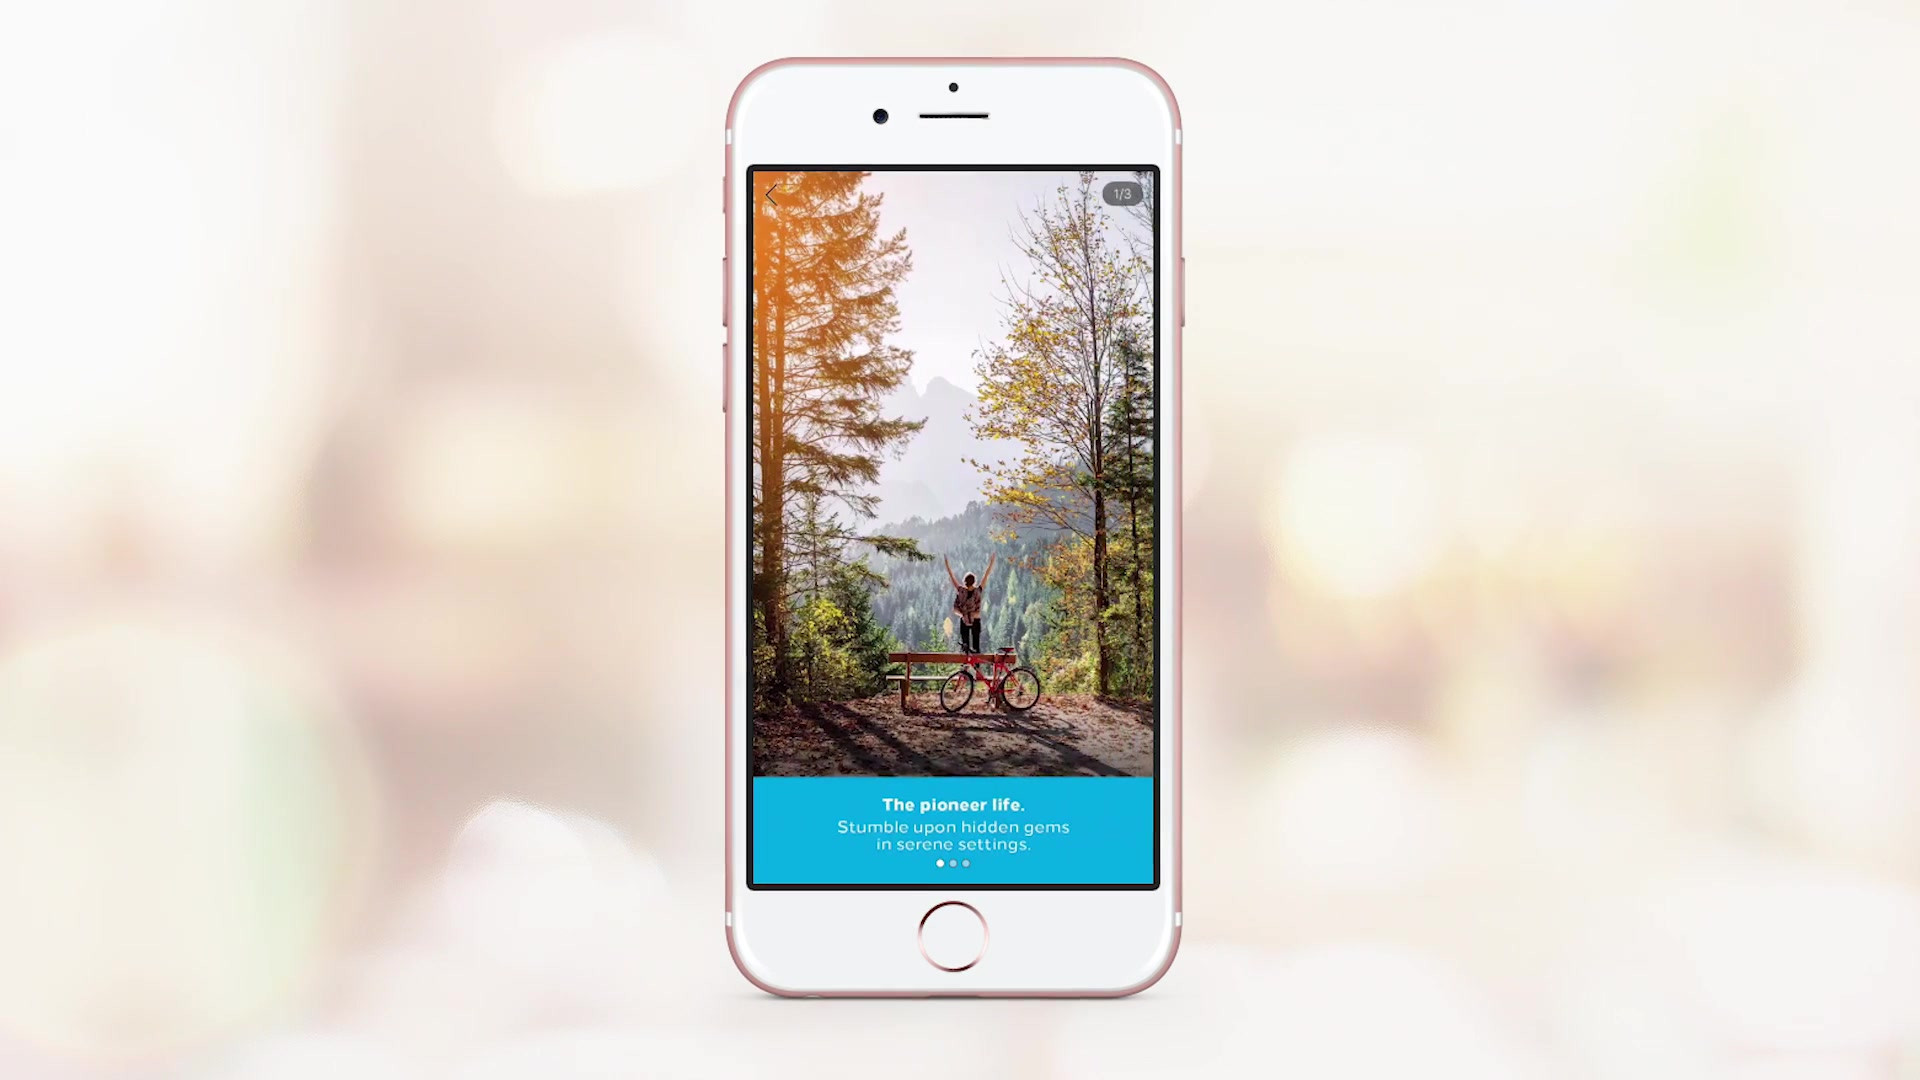 Facebook Canvas experience that takes folks through a weekend of possibilities.